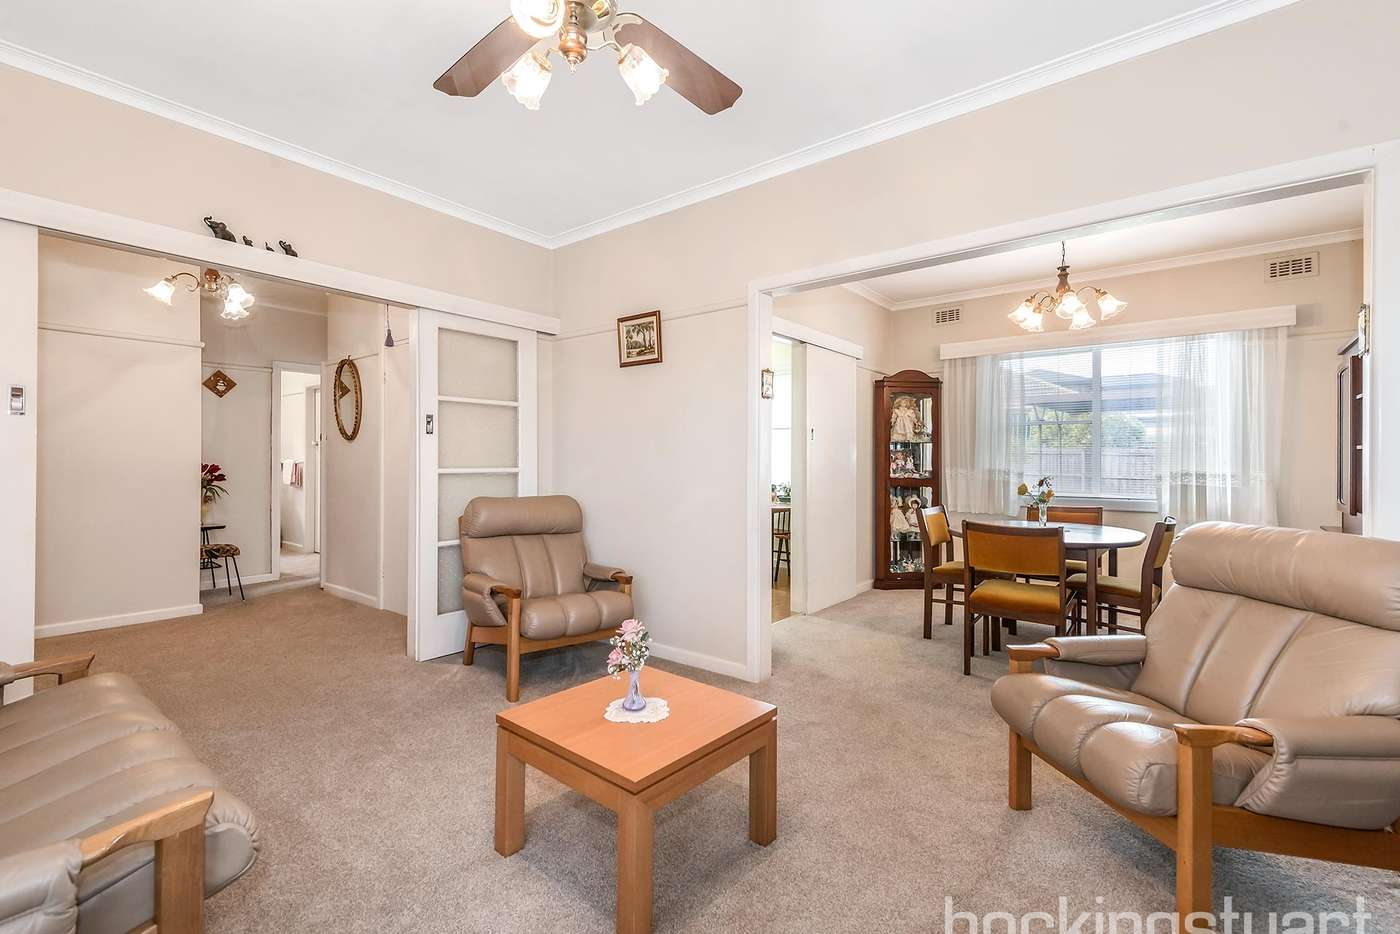 Main view of Homely house listing, 14 Cavanagh Street, Cheltenham VIC 3192